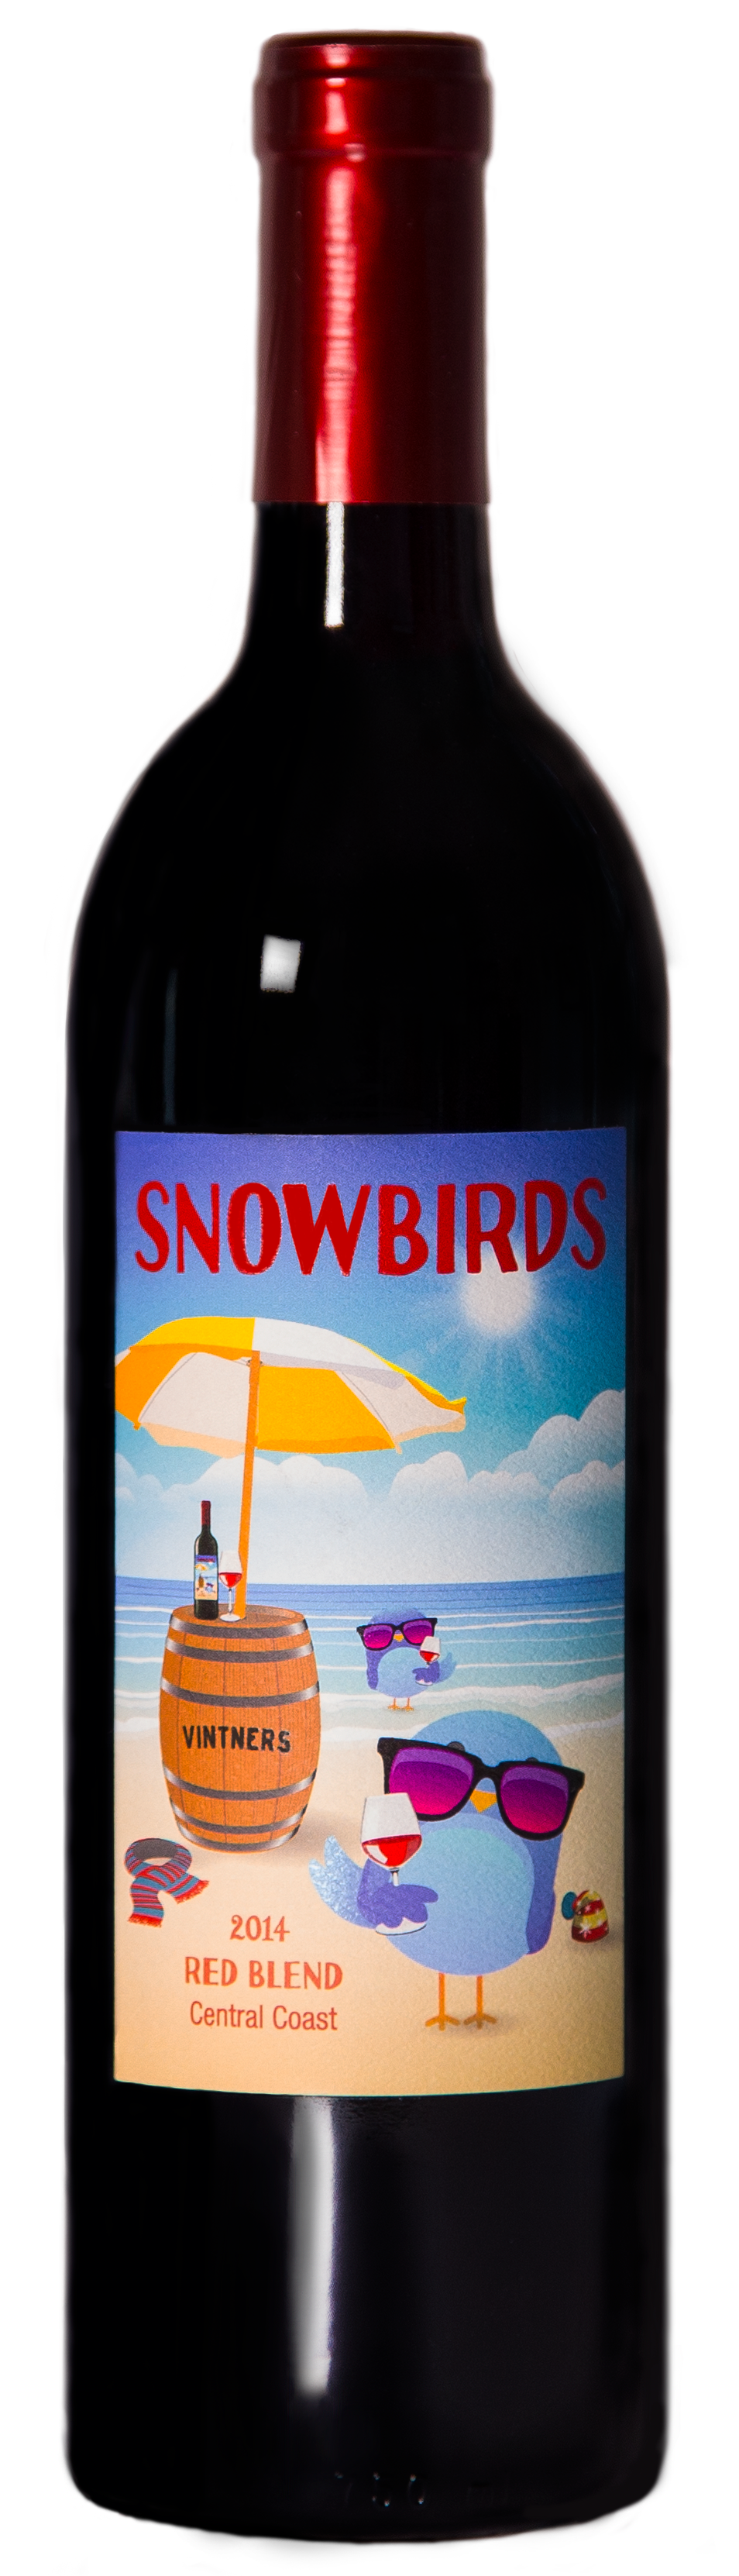 Snowbirds Vintners Will Participate in the Epcot Food and Wine Festival_Snowbirds Vintners Central Coast Red Blend-NB.png